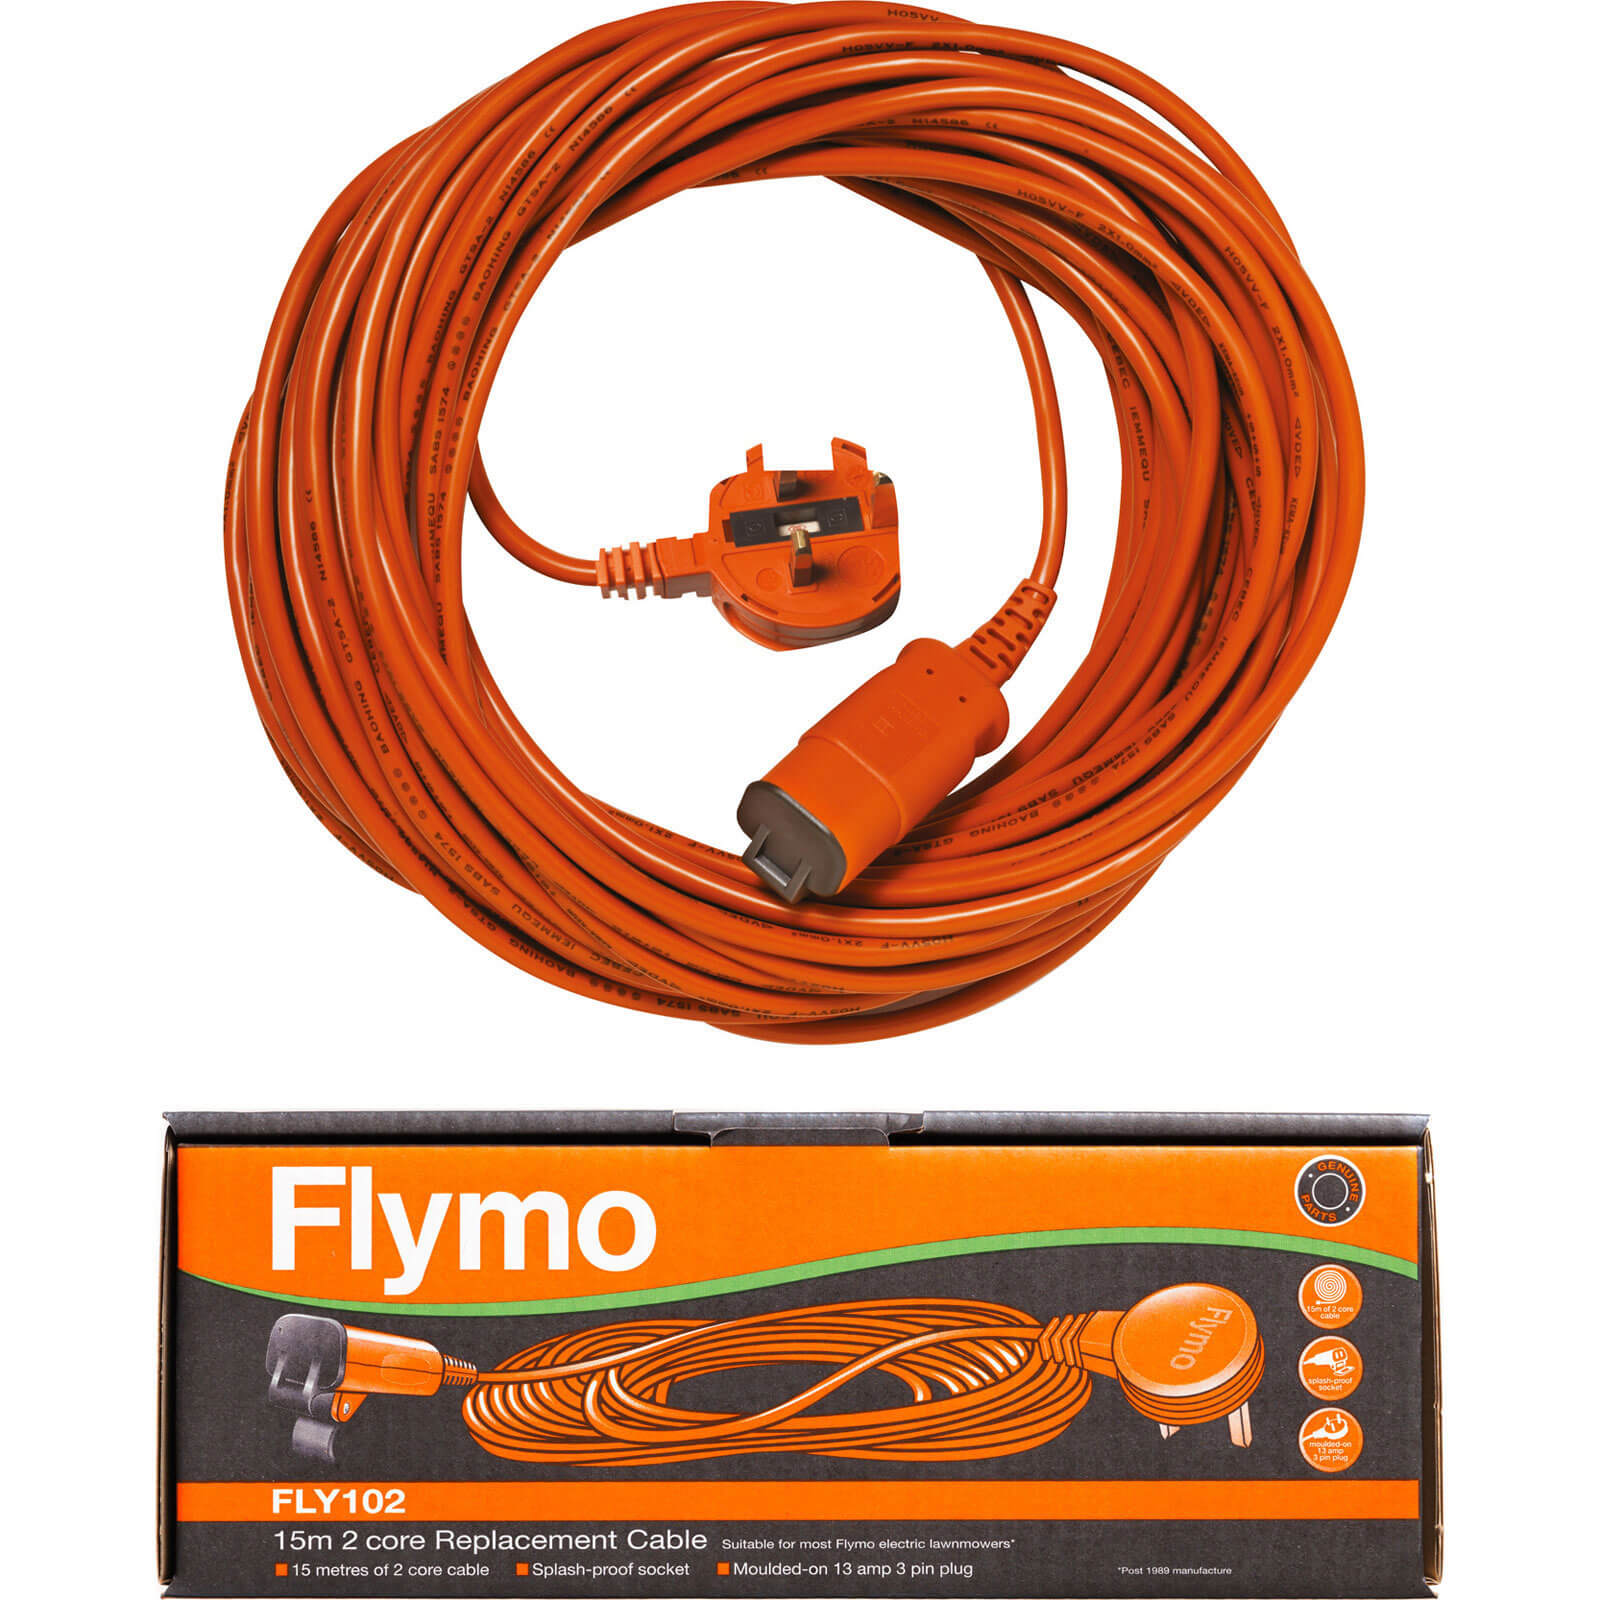 Flymo FLY102 15m Replacement Detachable Cable fits All Flymo Products